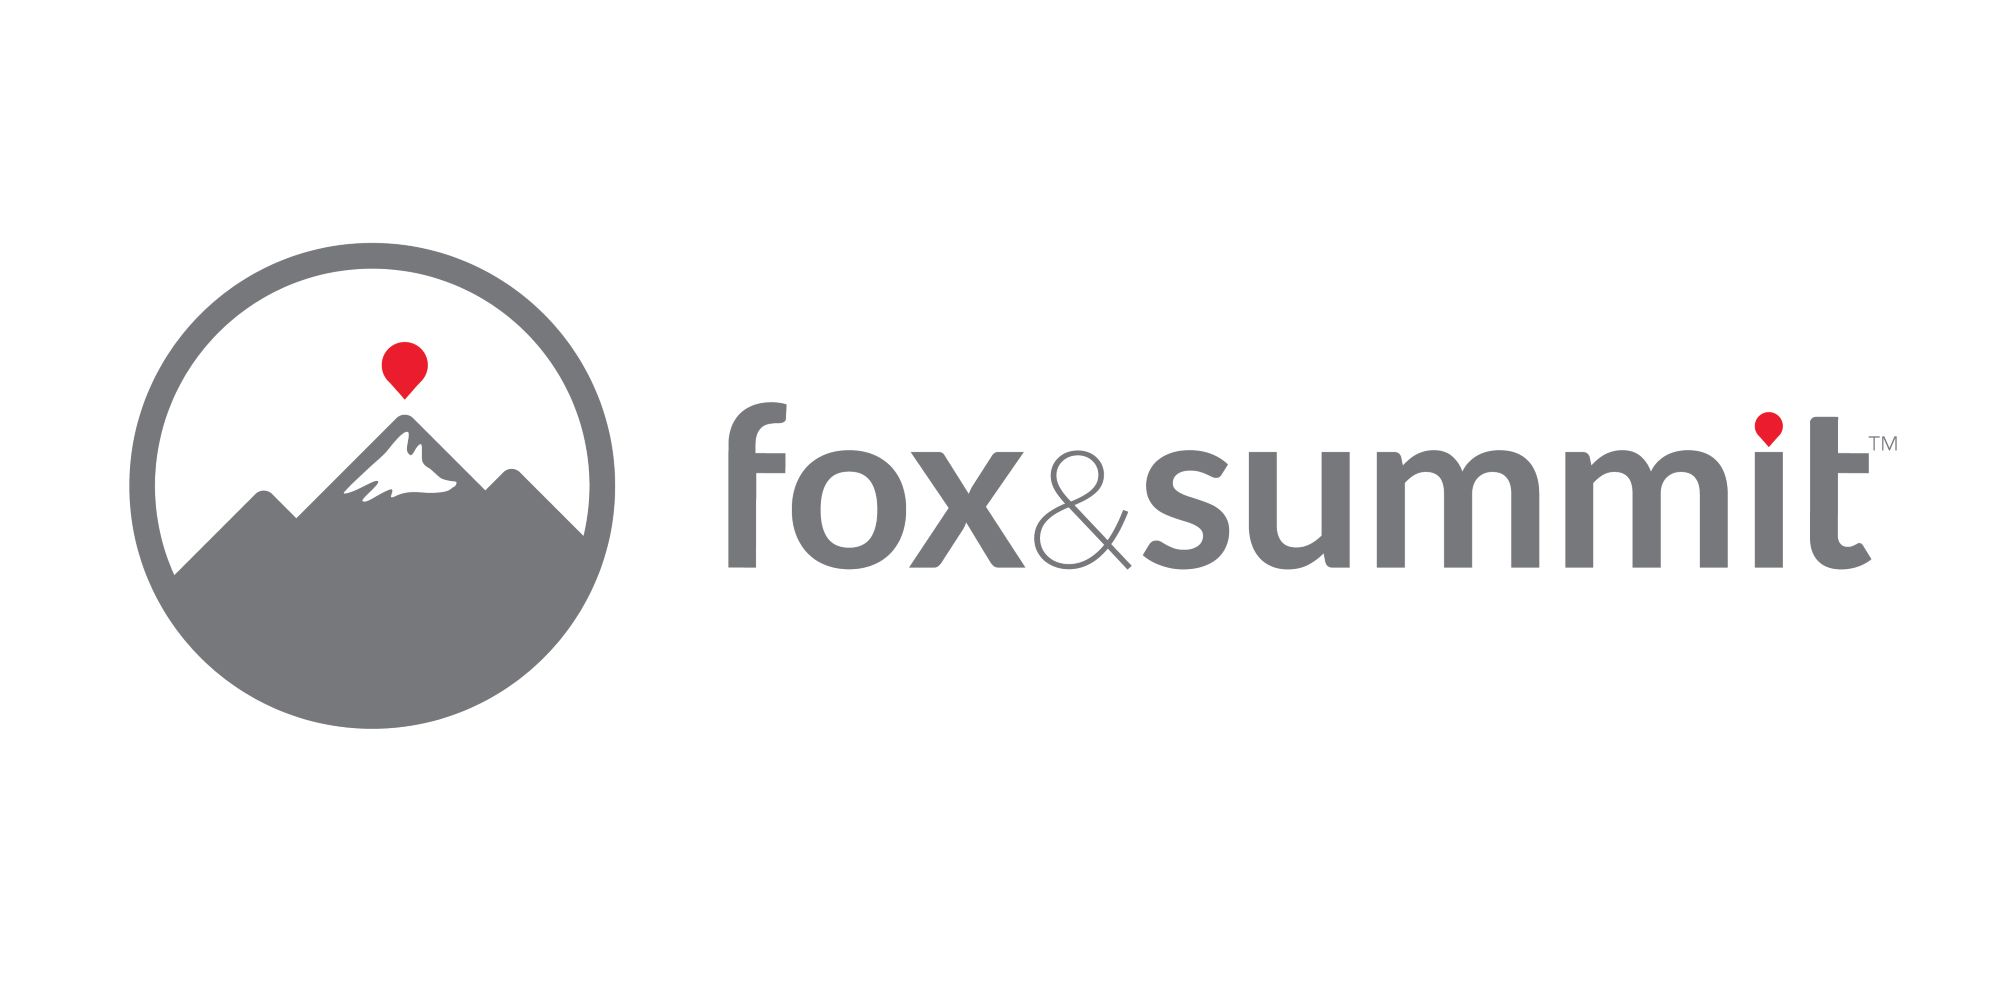 Fox&Summit™ Smart Home Devices are Coming to a Fry's